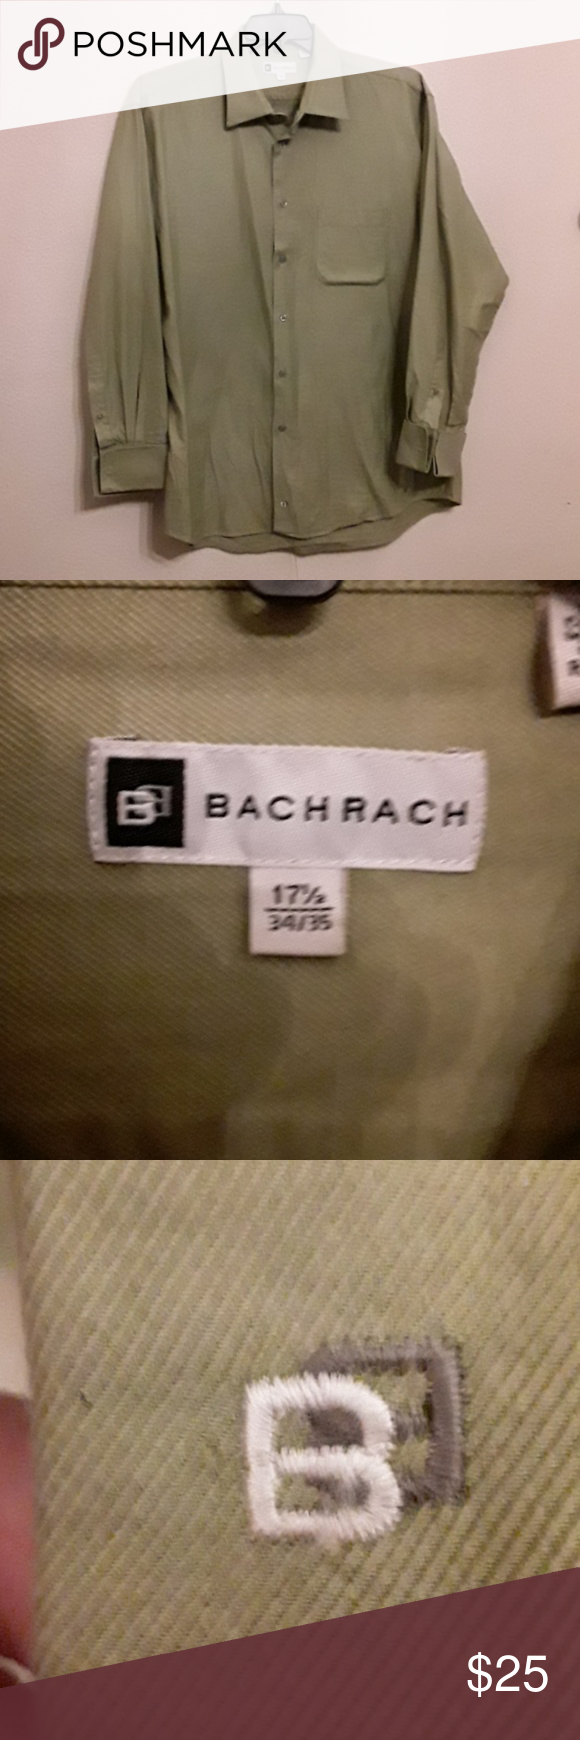 Bachrach sage green dress shirt, 17.5 Cotton,  like new, sage green. This shirt requires cuff links!!!   B07 Bachrach Shirts Dress Shirts #sagegreendress